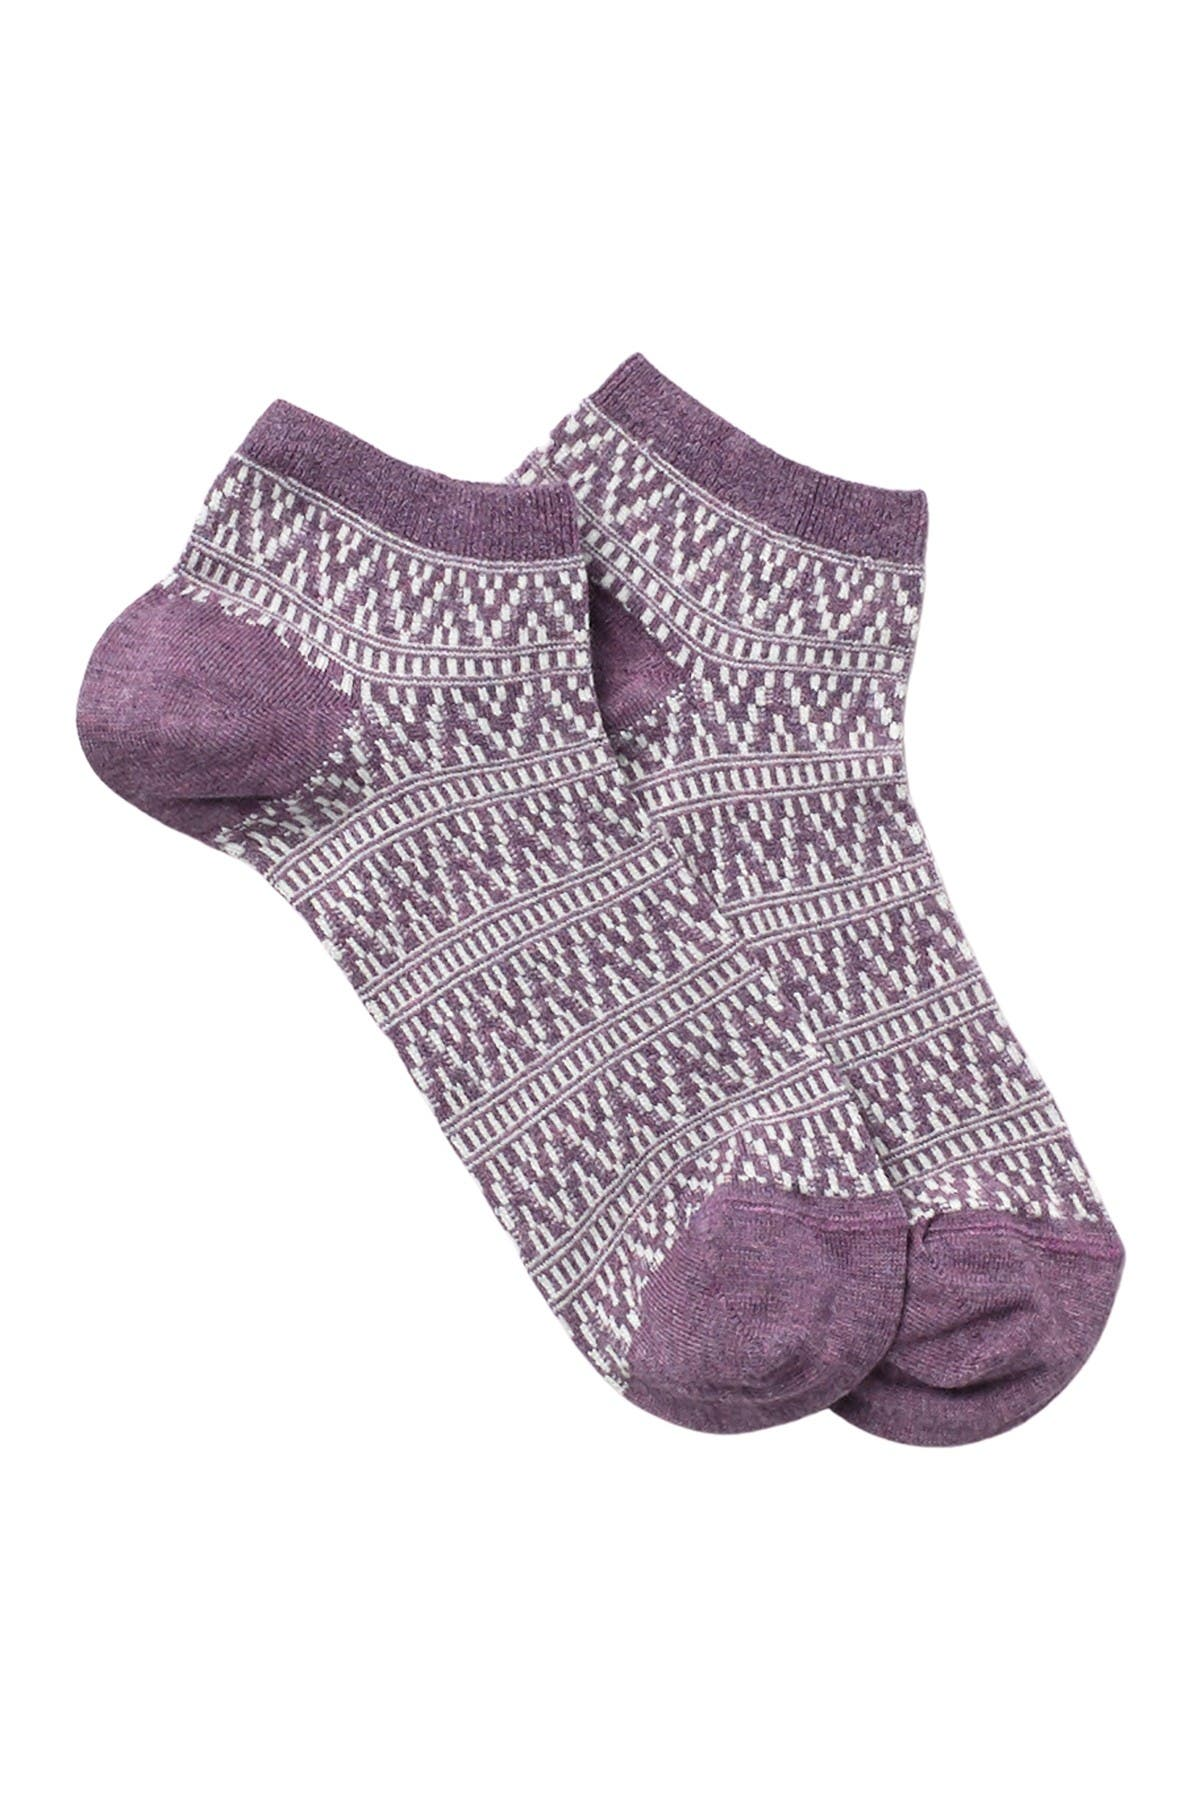 Image of Tavi Noir Casual Sophia Socks